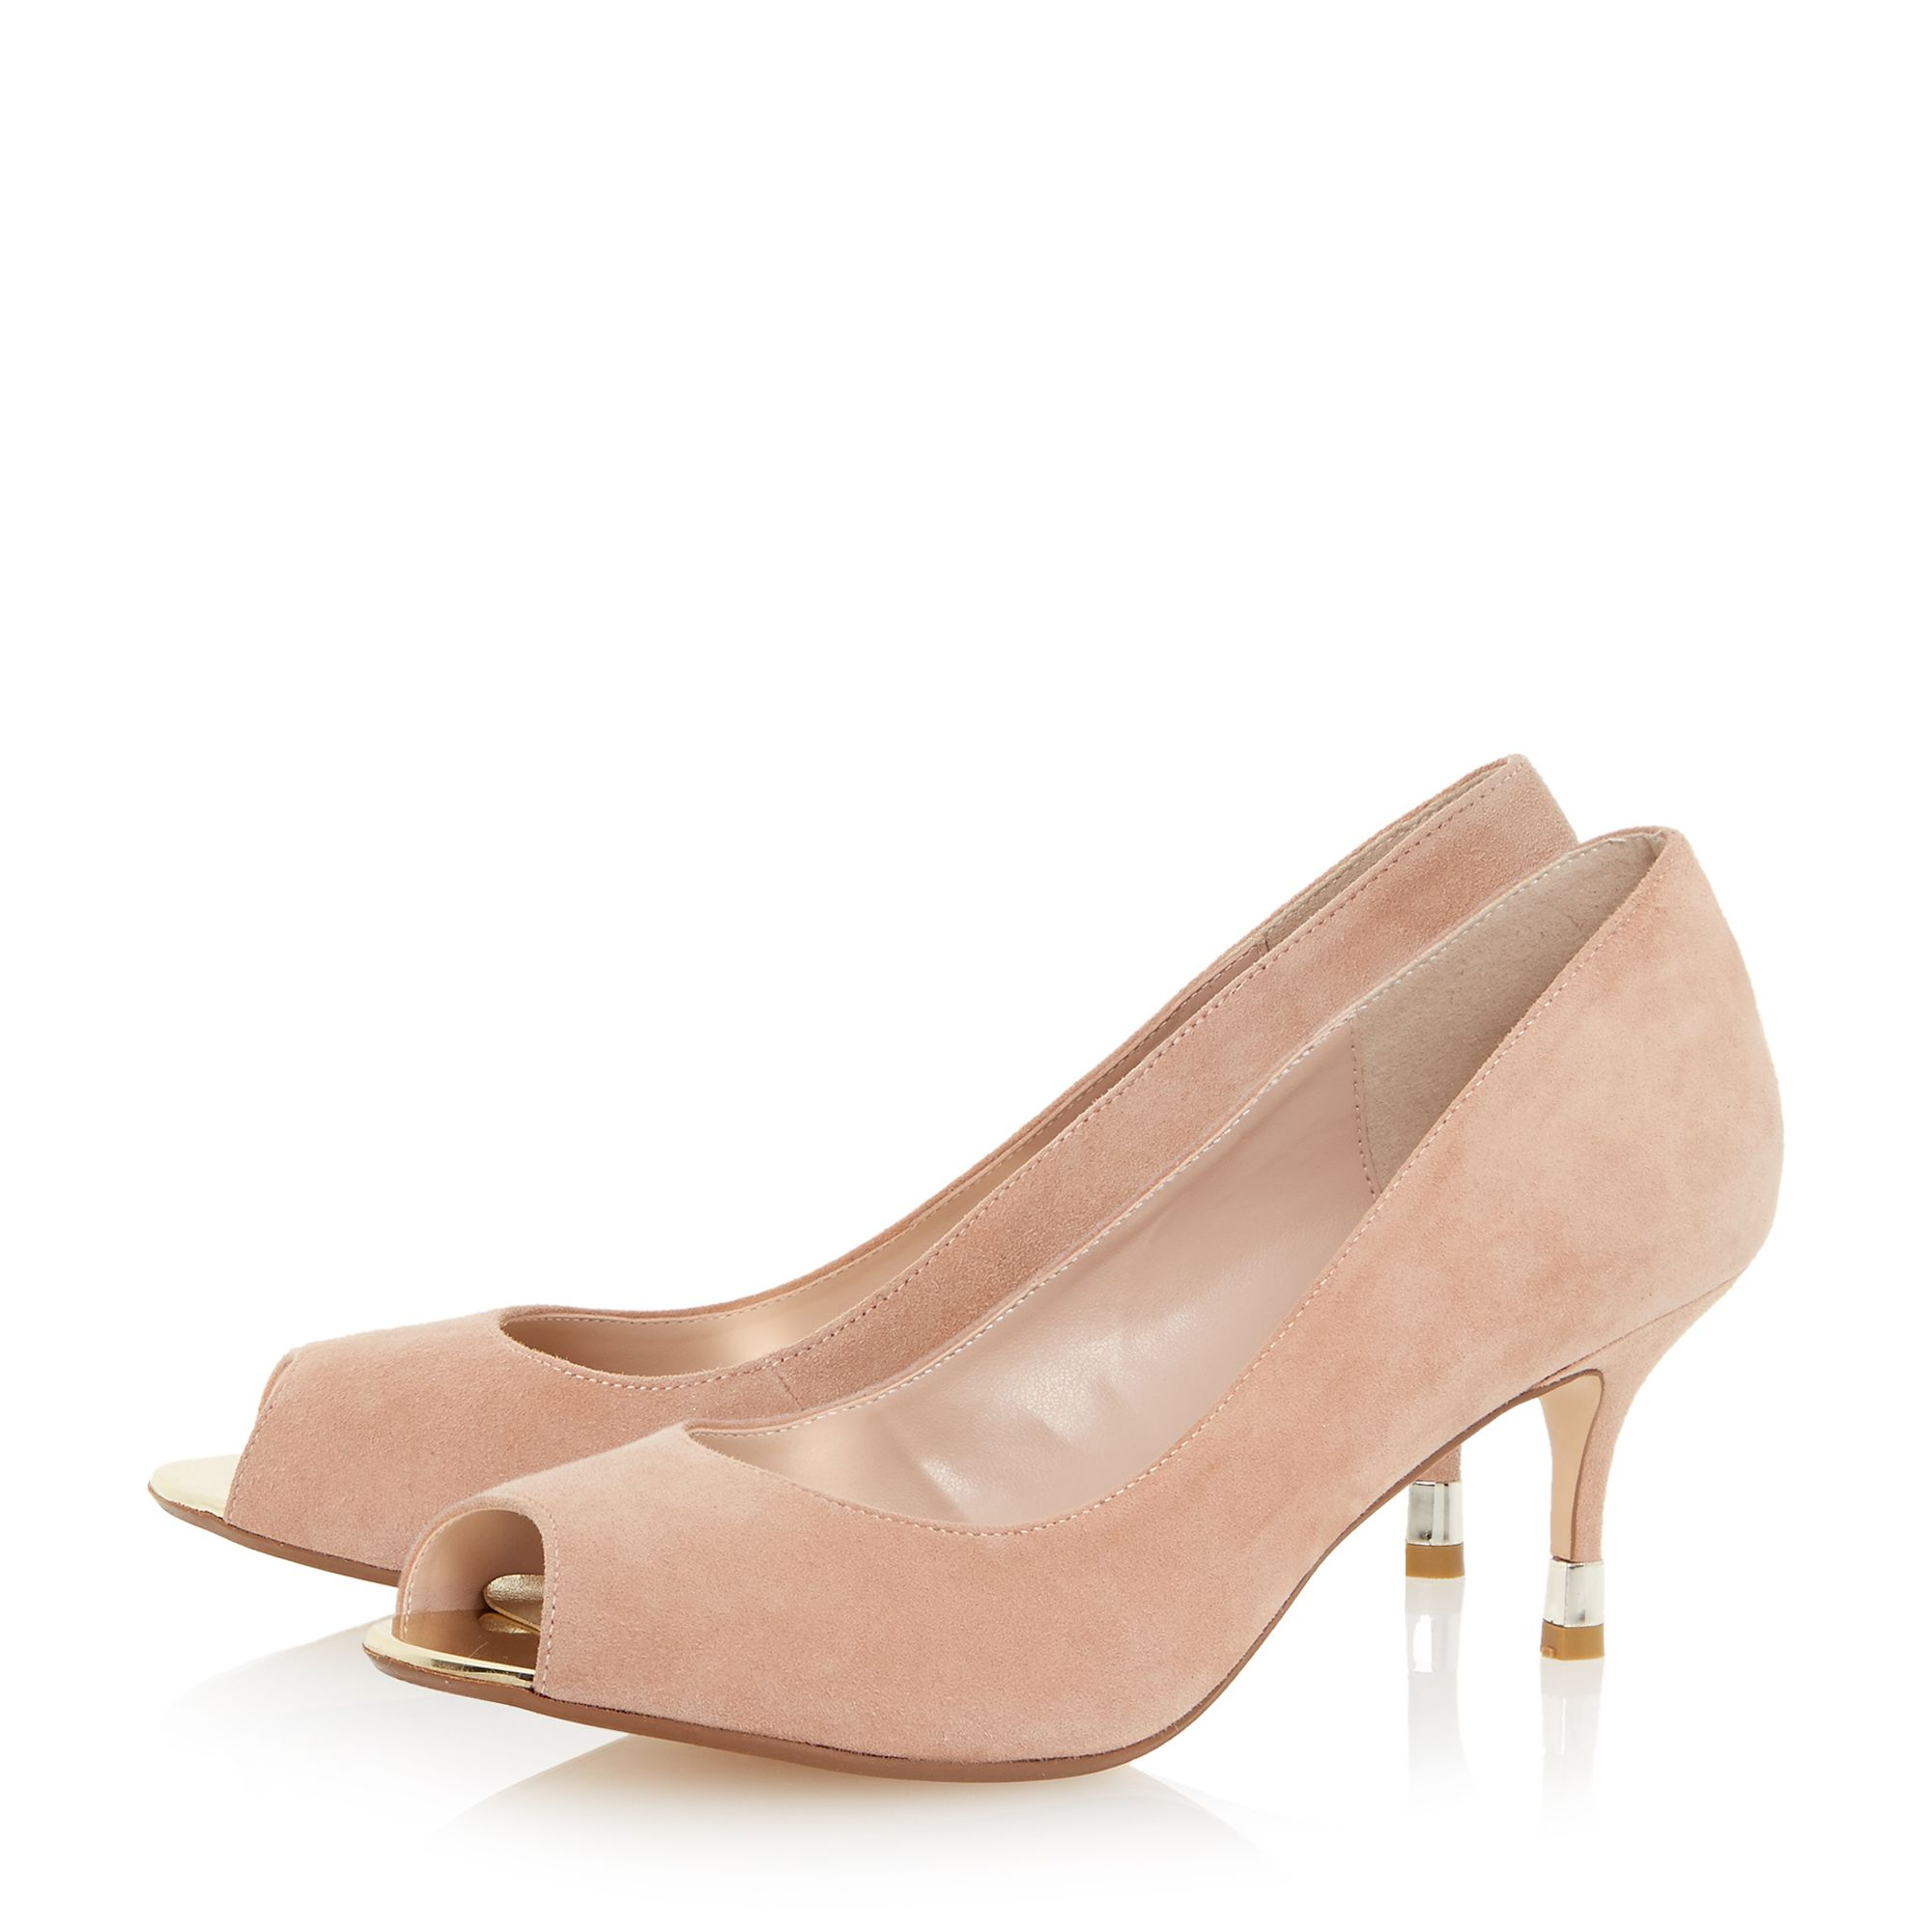 Dune Denise Peep Toe Kitten Heel Court Shoe in Pink | Lyst